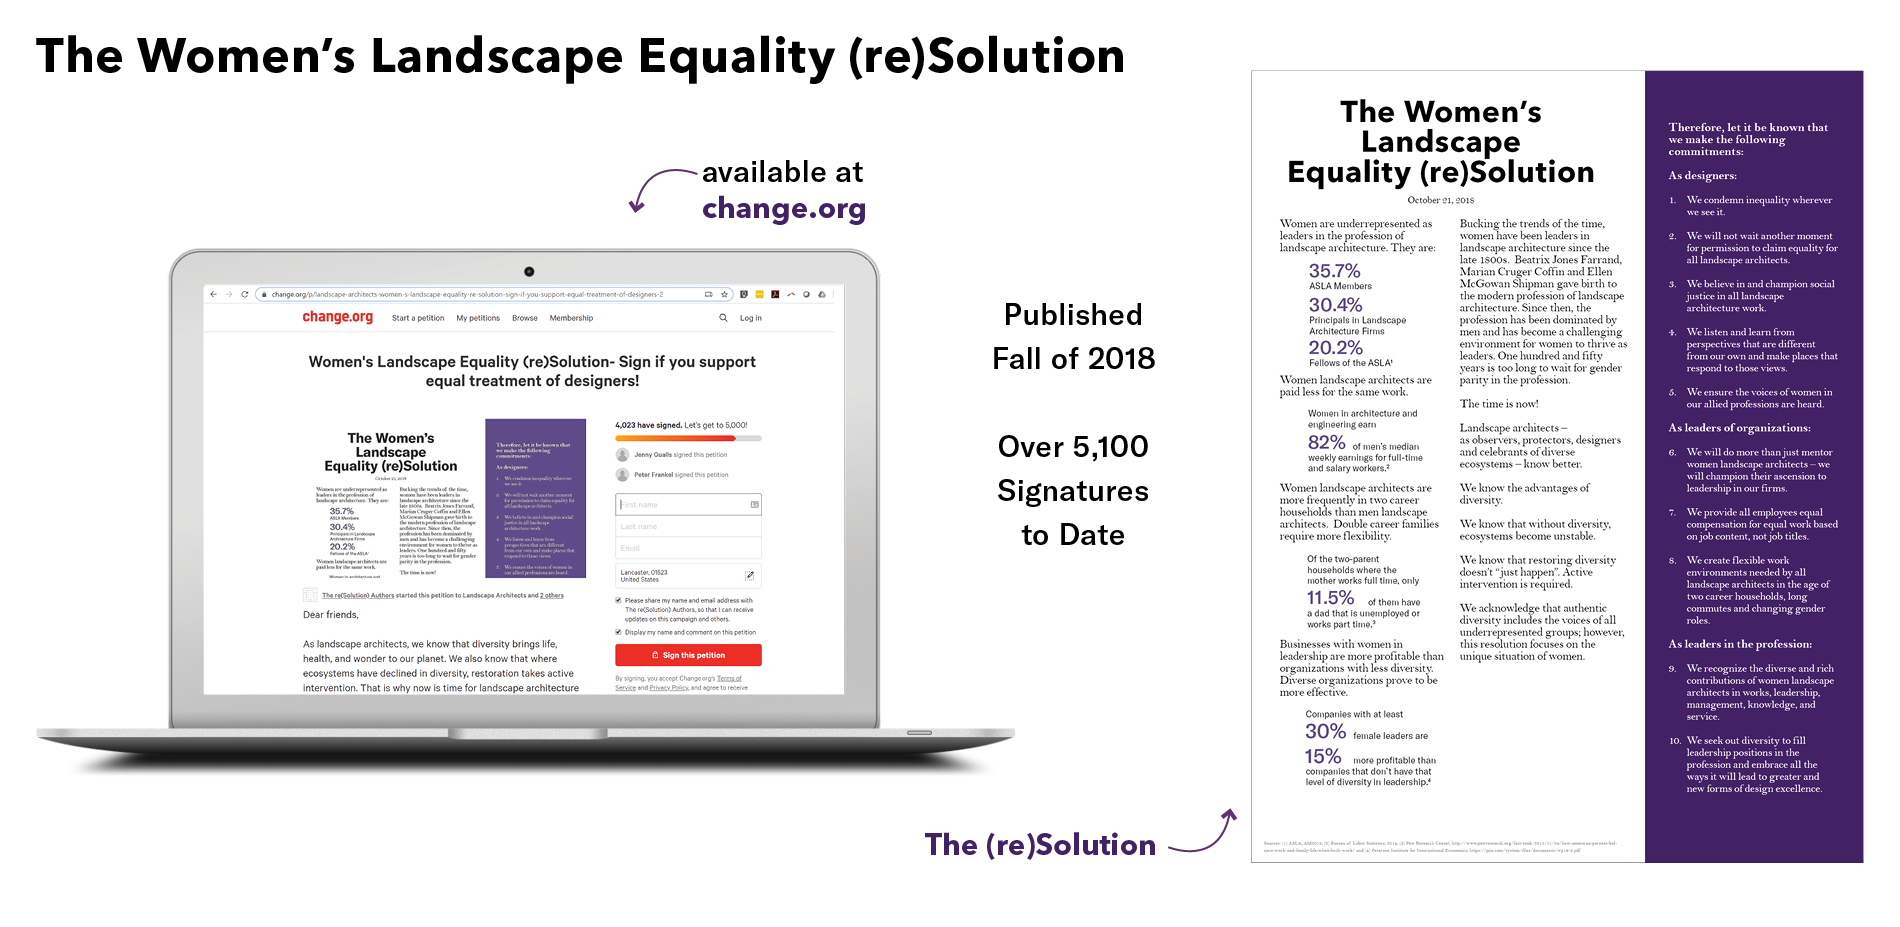 The Women's Landscape Equality (re)Solution